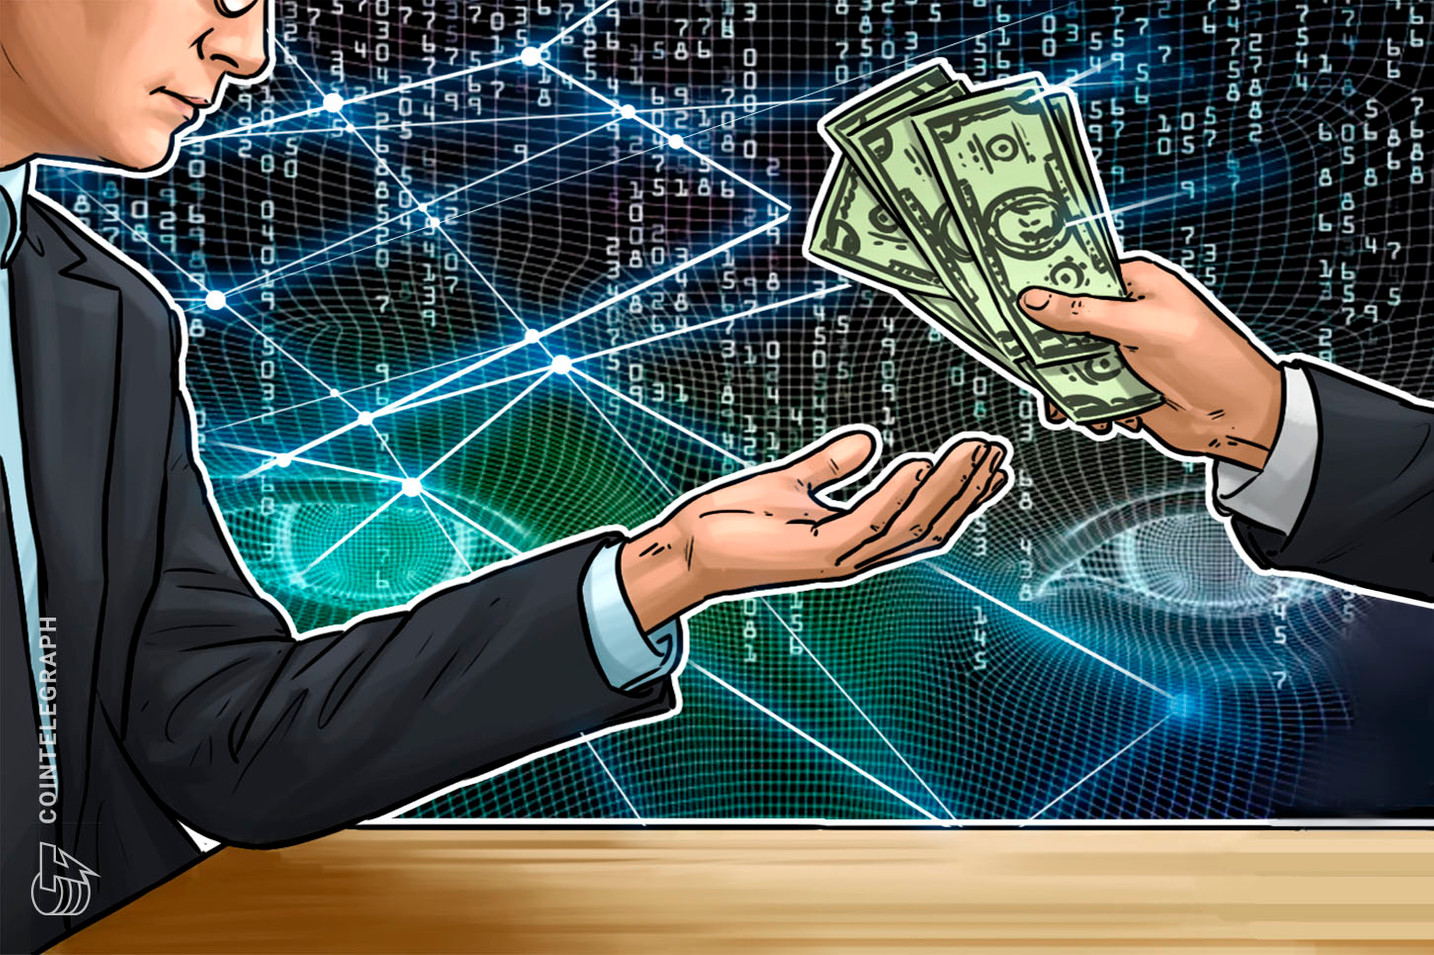 Cryptocurrency Lending Firm Genesis Global Trading Processed Over $1.1 Billion in 2018